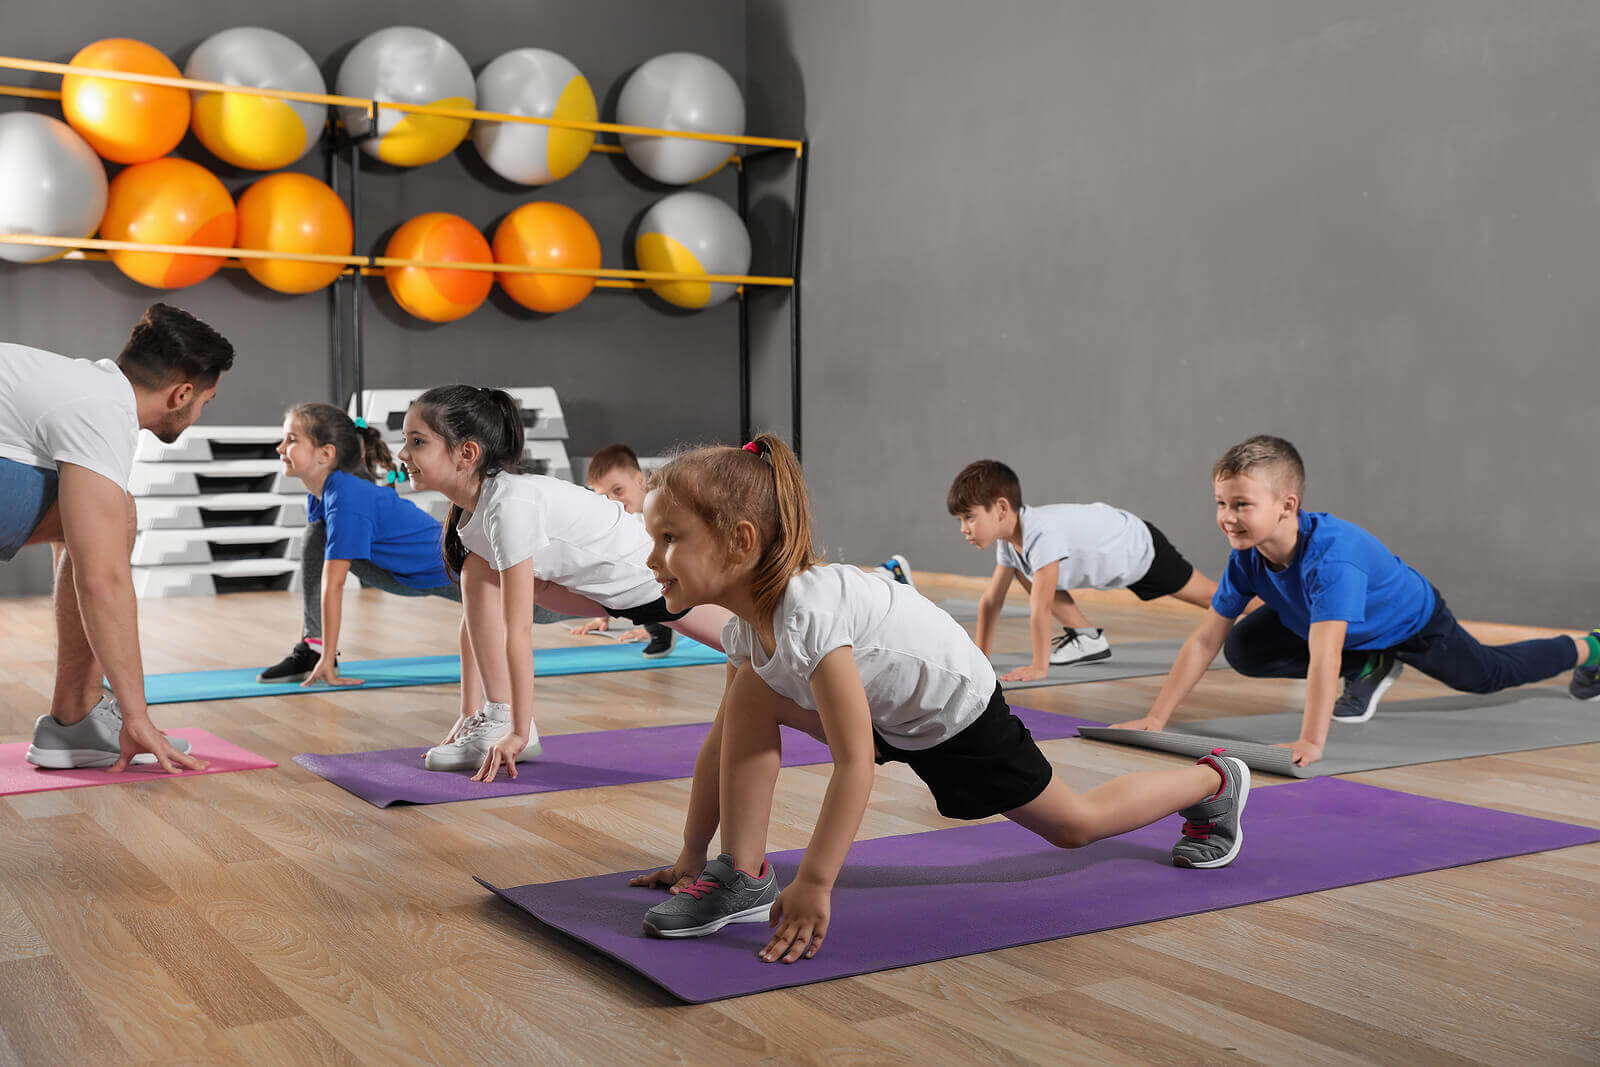 Children stretching on yoga mats in a gym.